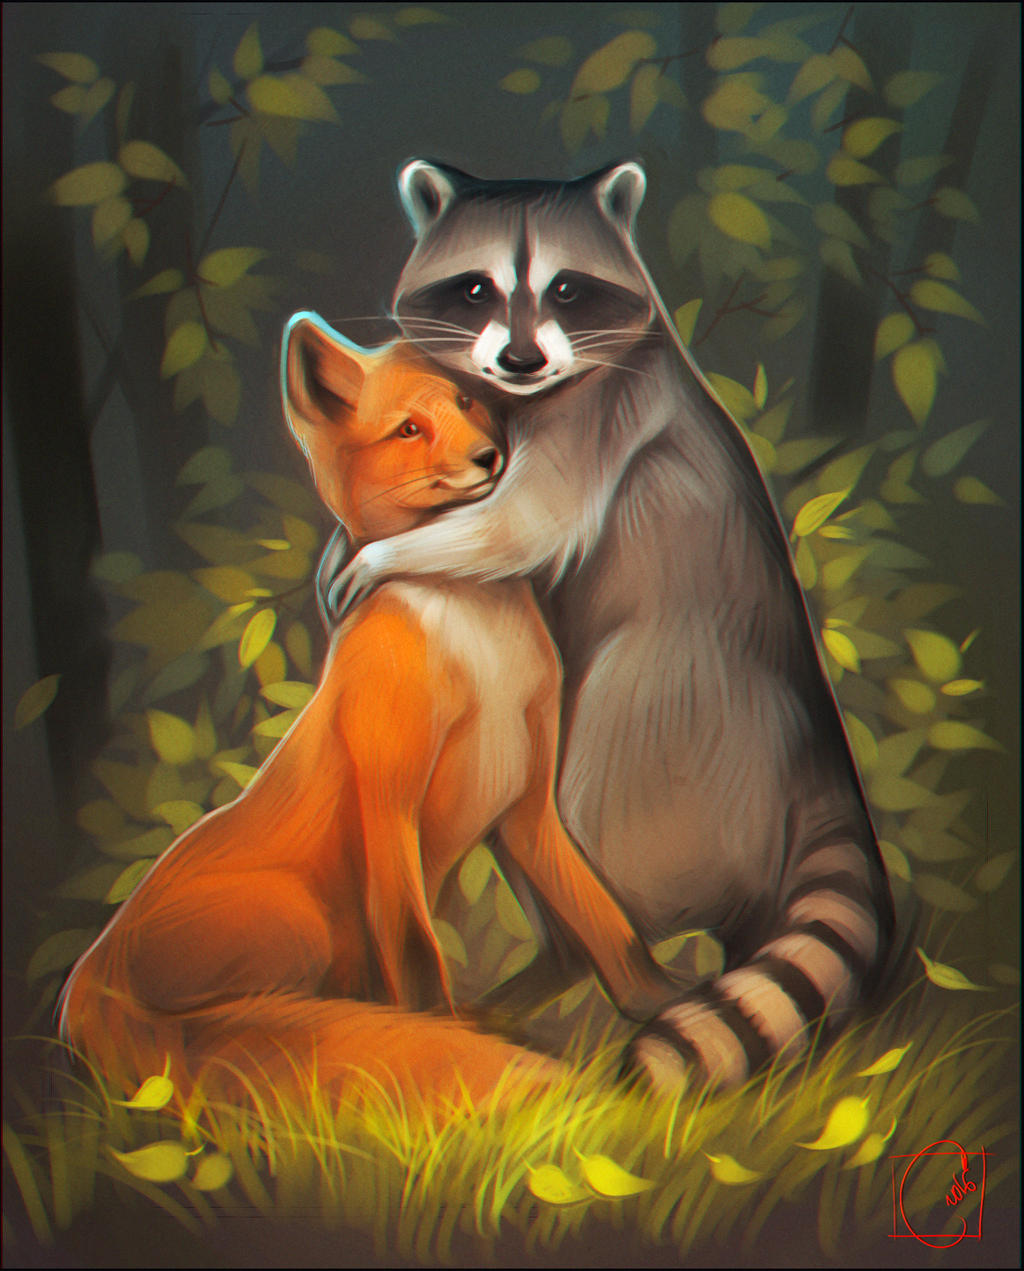 raccoon_and_fox_by_gaudibuendia-da326nj.